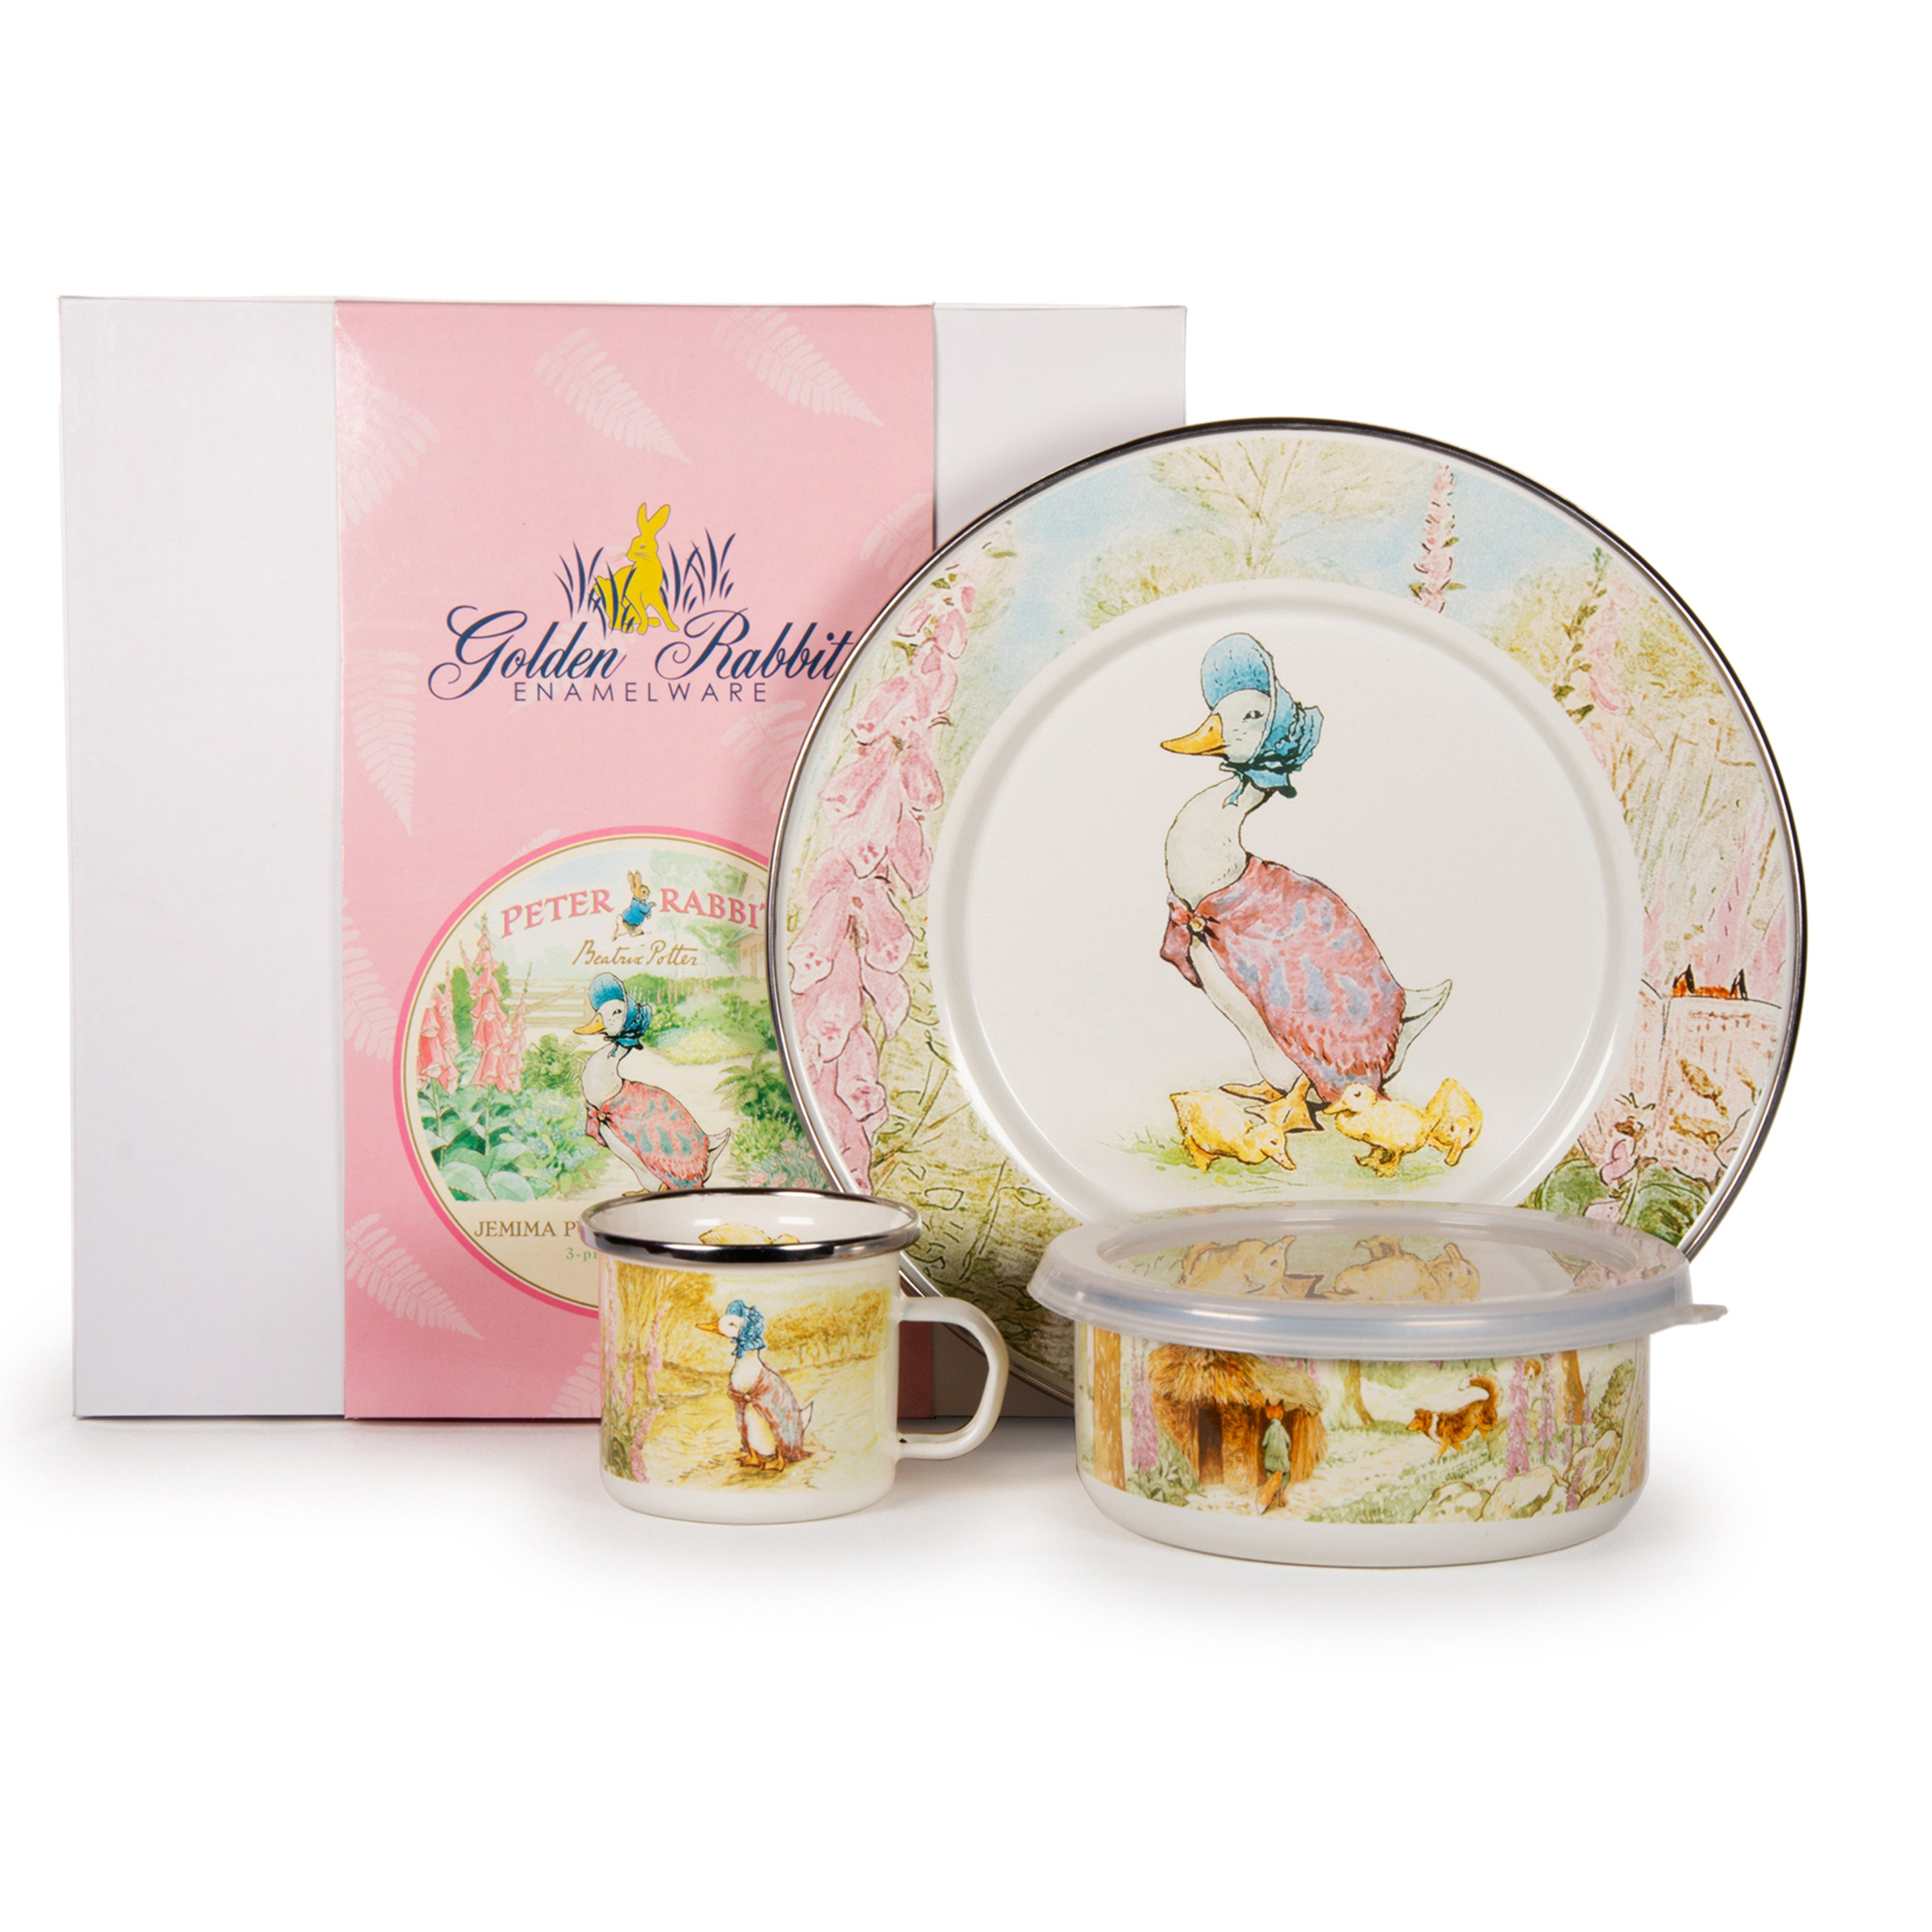 JD99 - Jemima Puddle-duck Set Product 1